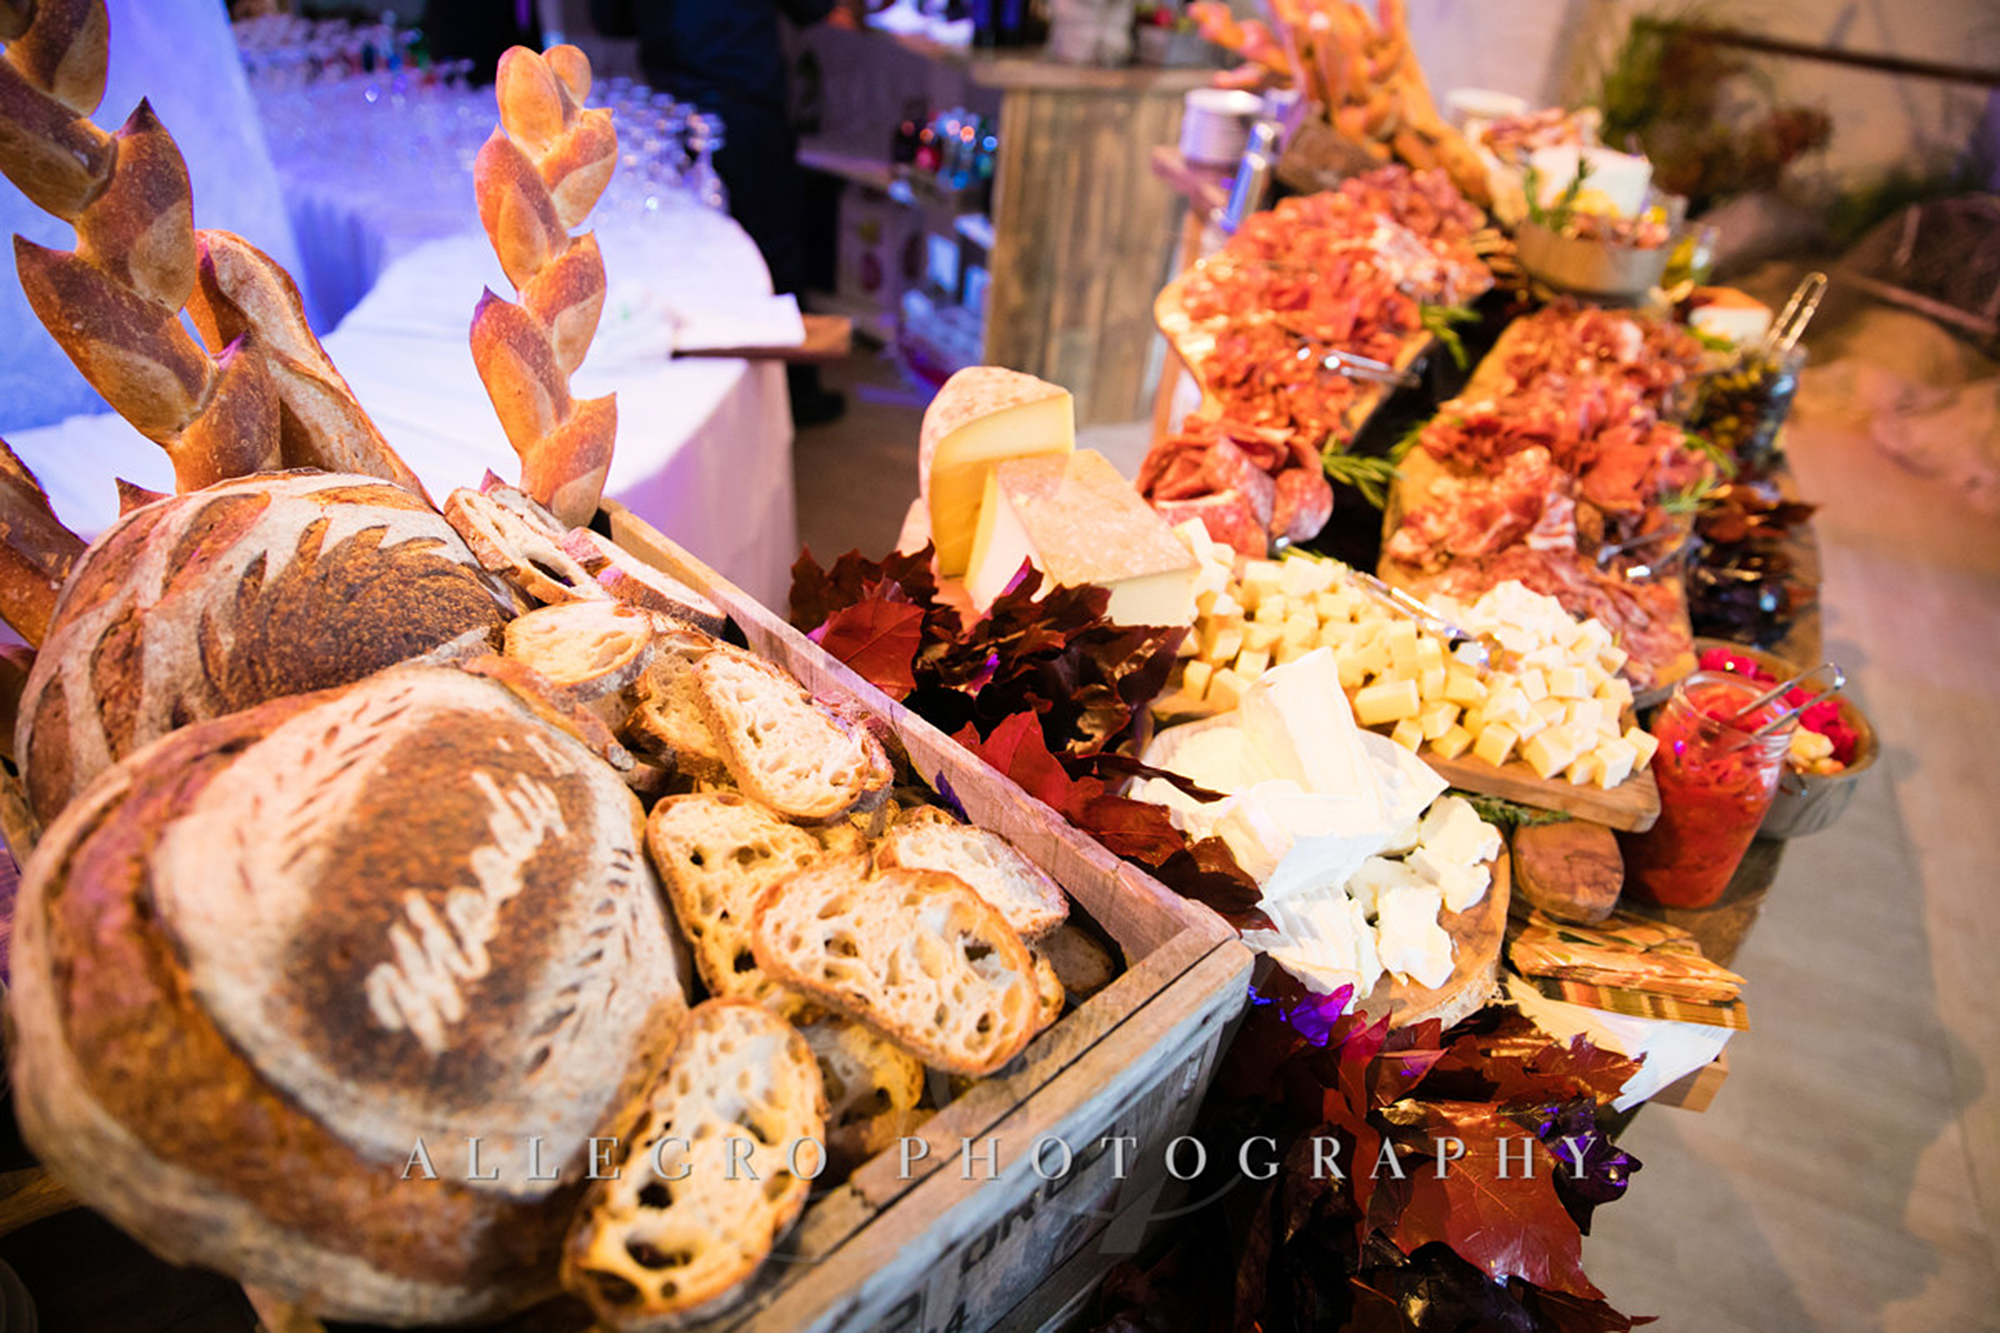 04_Corporate Client Appreciation Charcuterie Table_AE Events.jpg